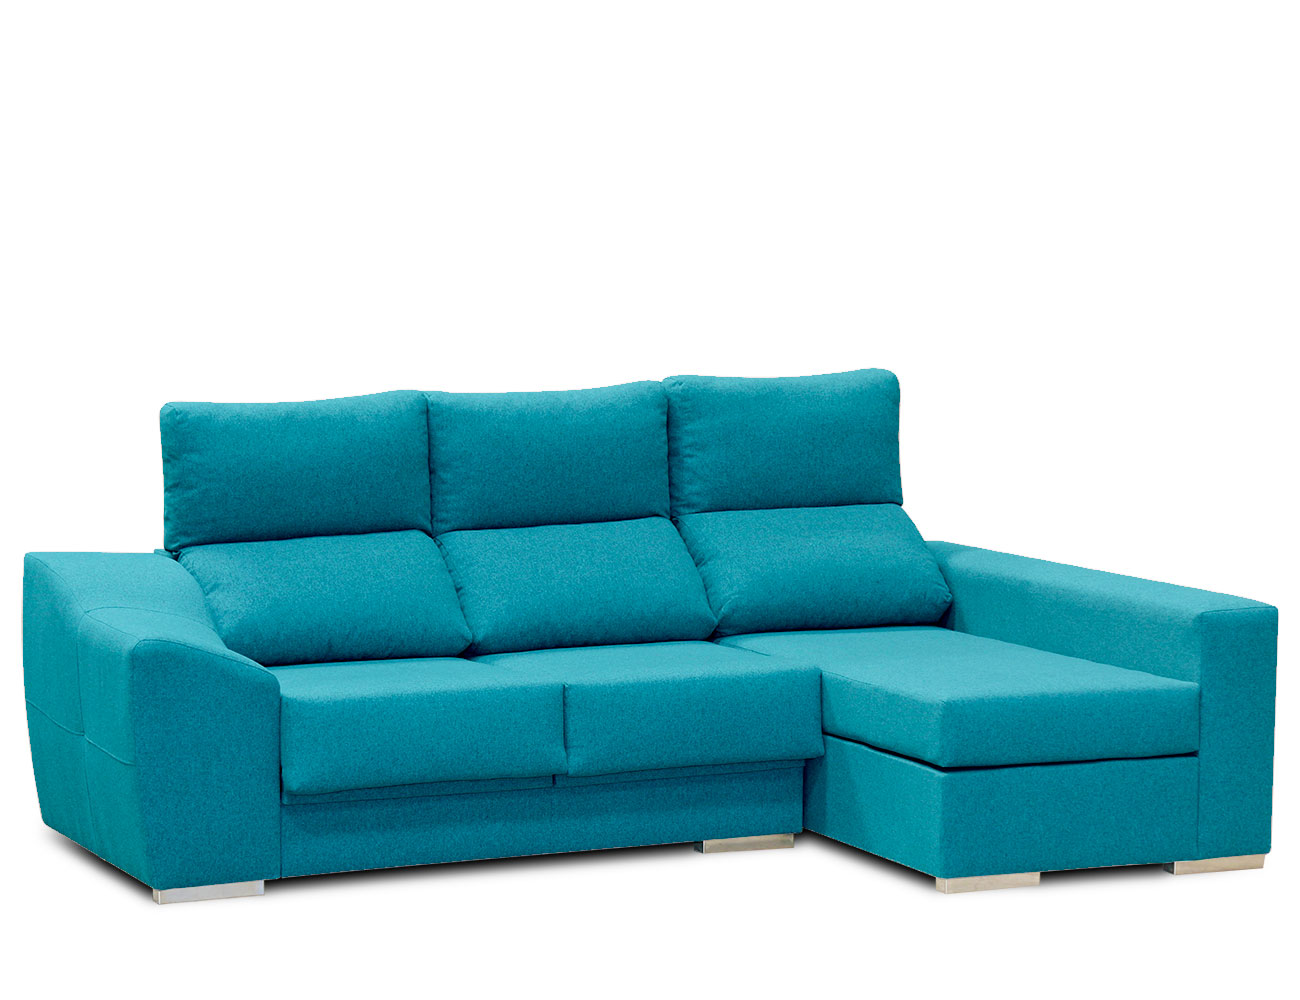 Sofa chaiselongue moderno turquesa 1